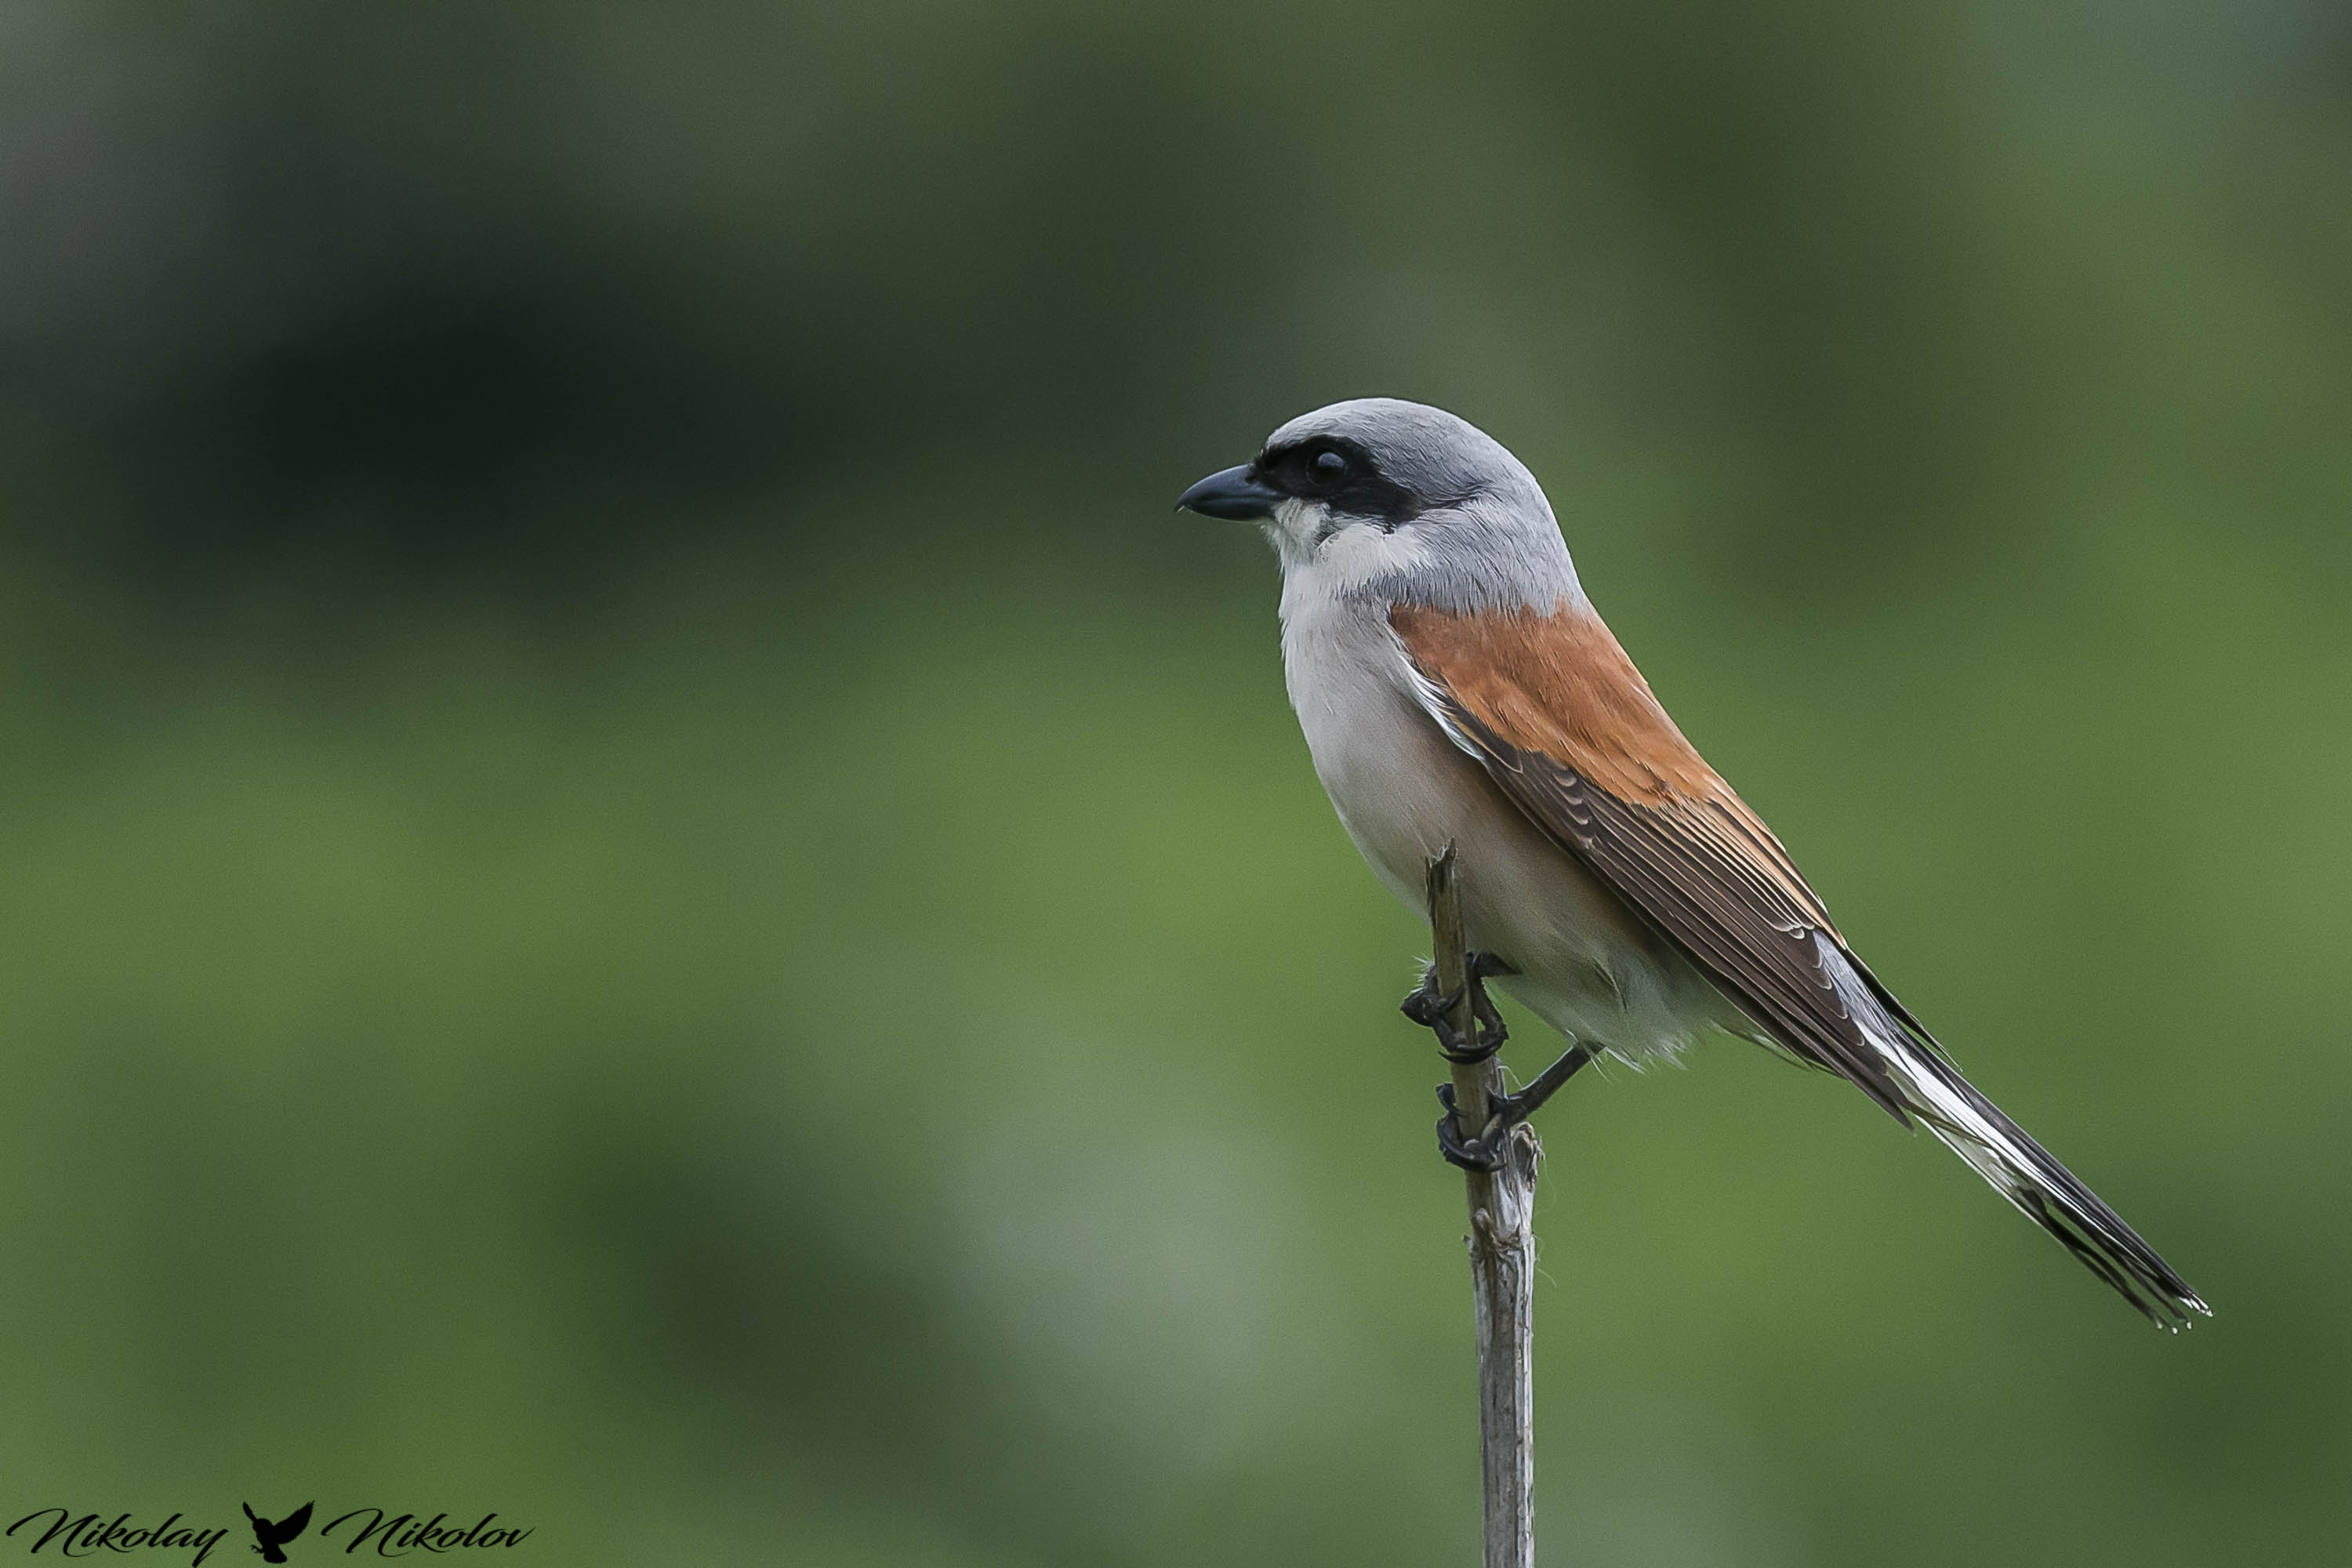 red-backed shrike,красная спина,червеногърбата сврачка,bird,portrait,landscape,wildlife,autum,sun,forest,nature, Nikolay Nikolov